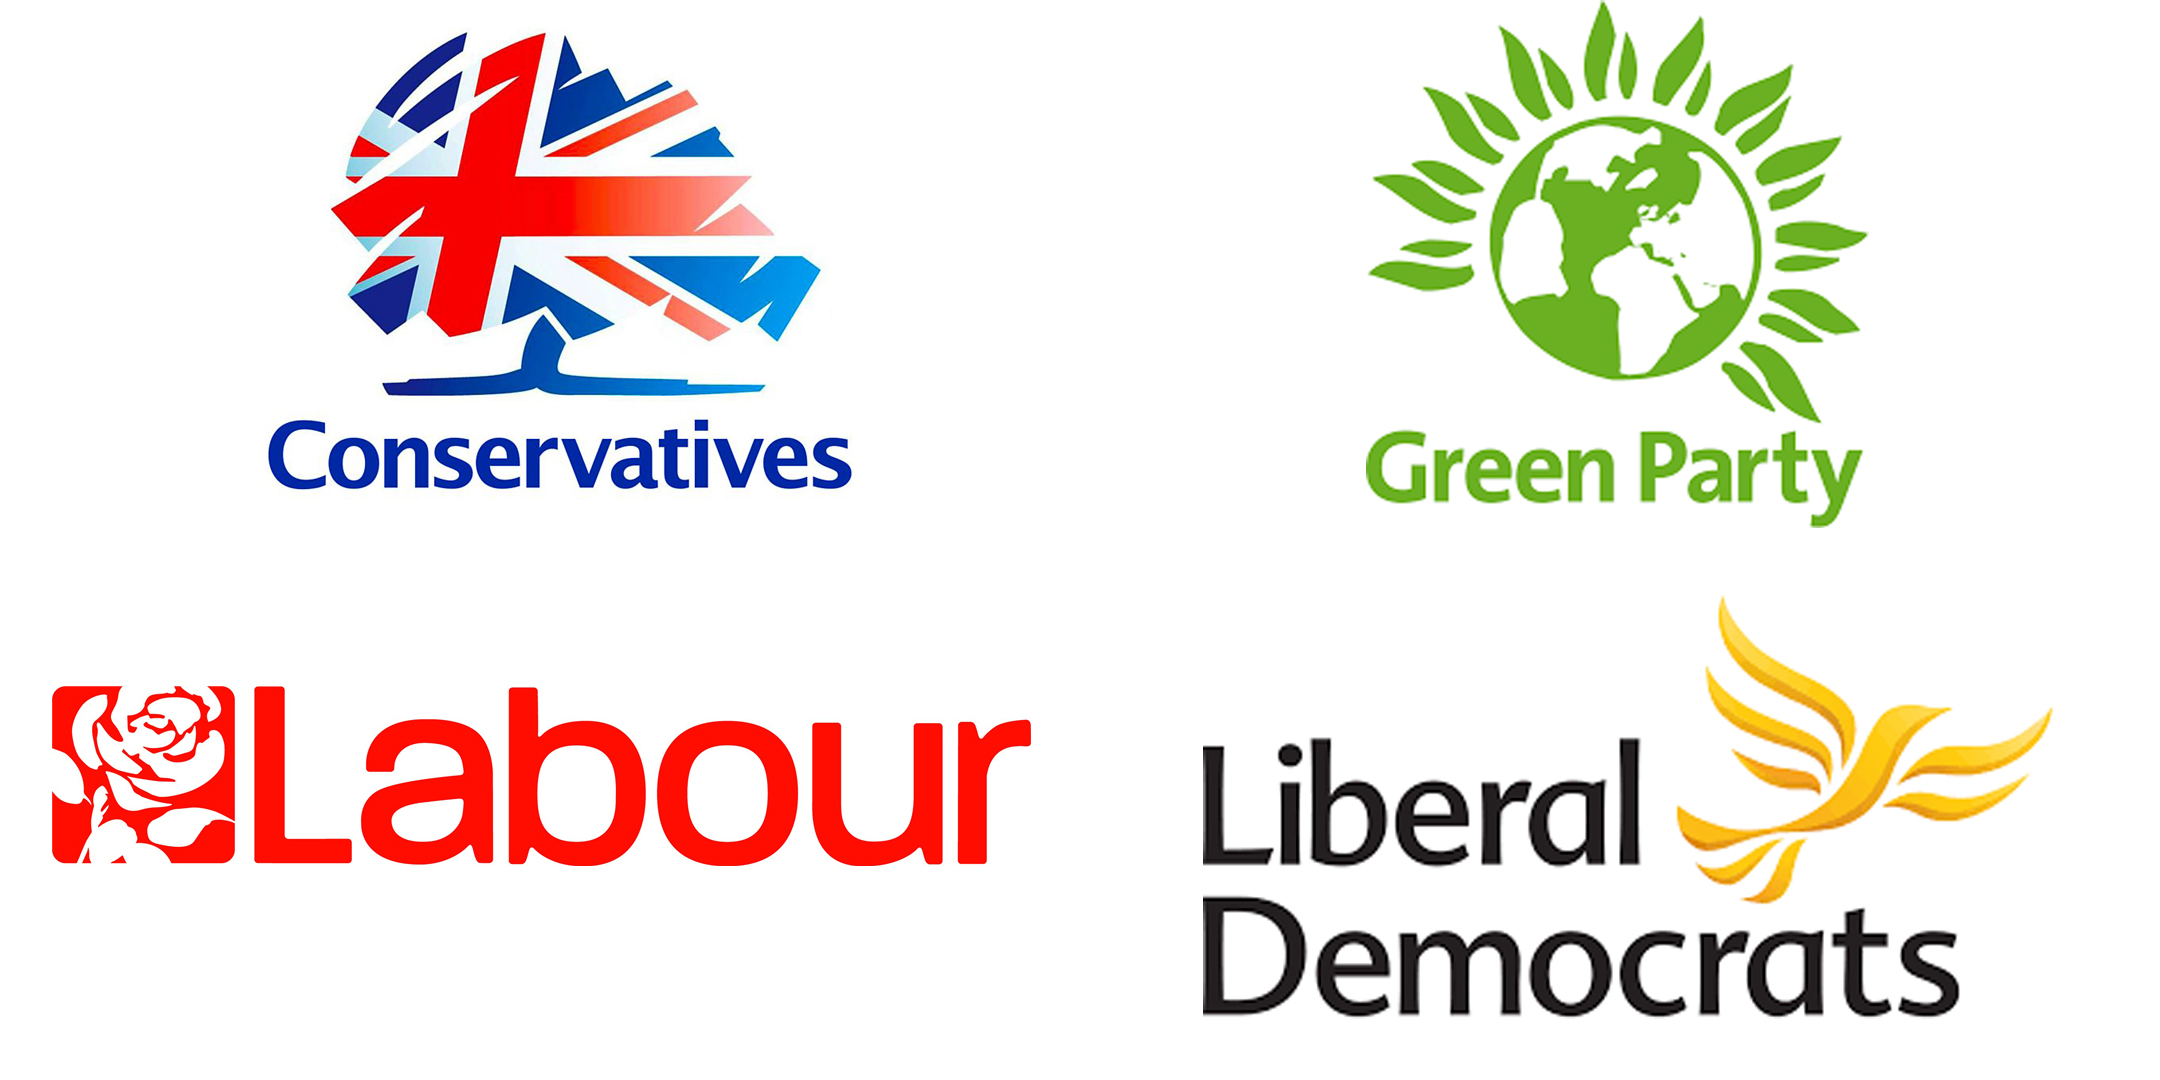 u k general election political party logos